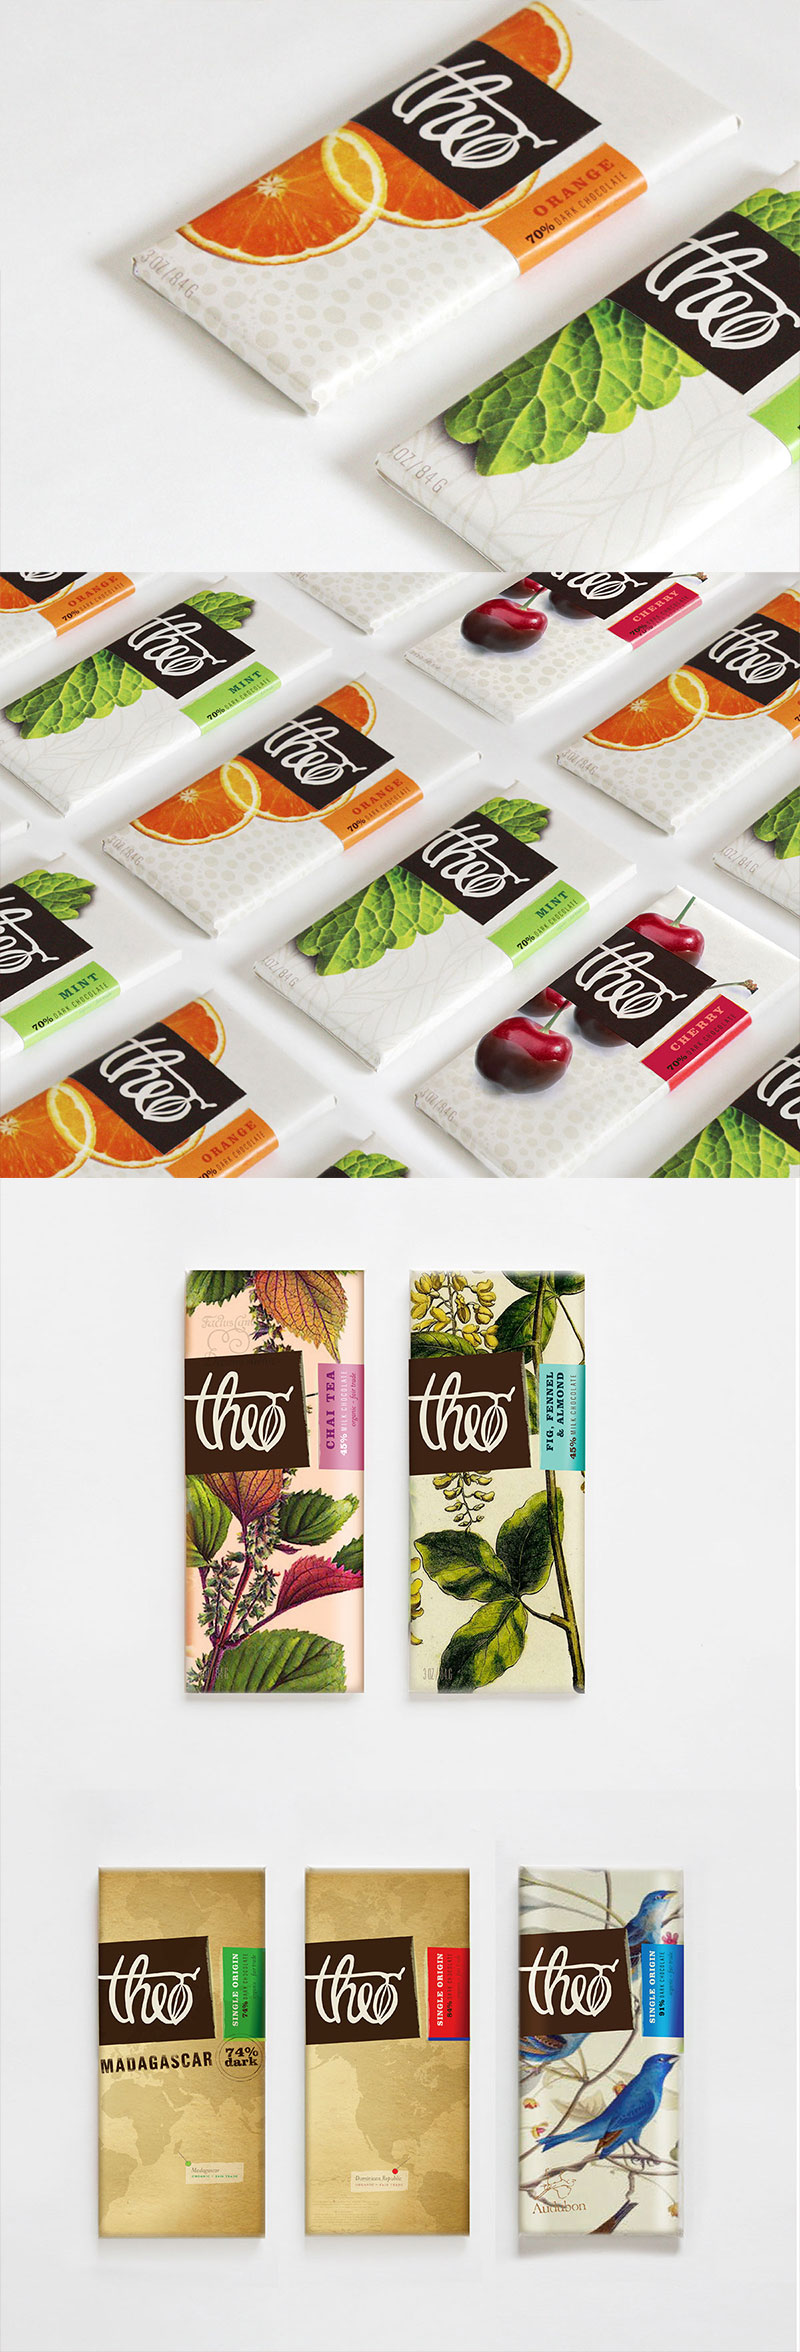 Theo Chocolate by Ashley Parker